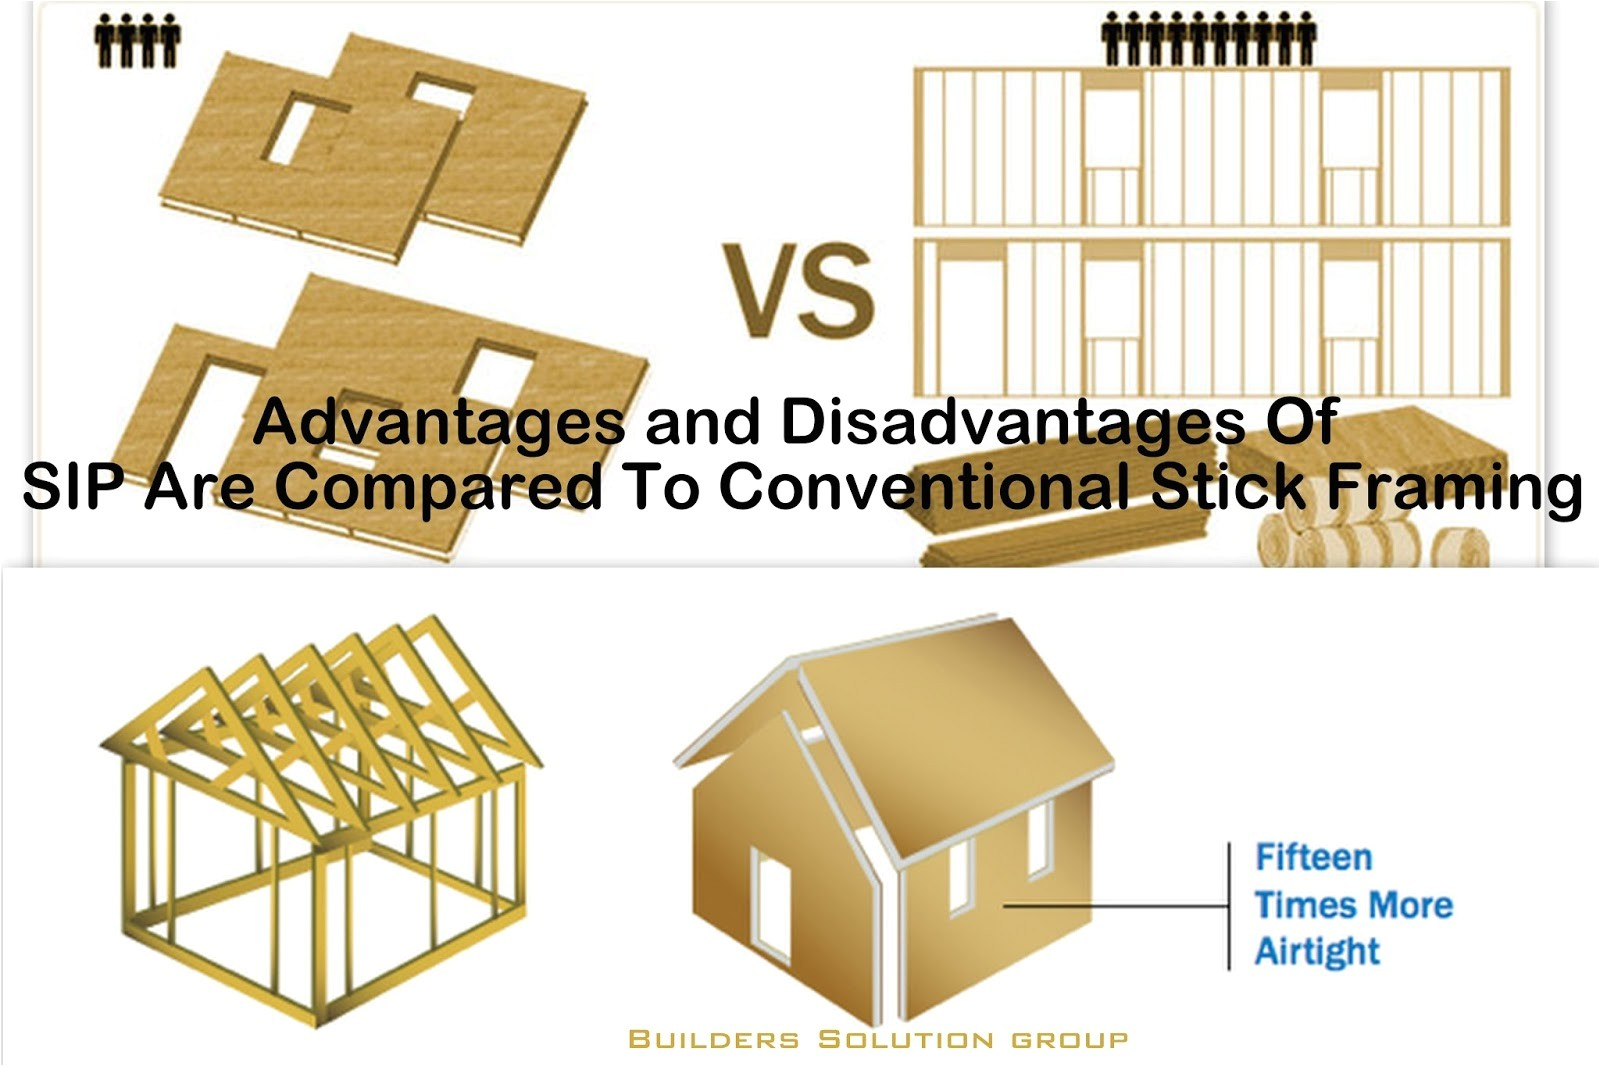 advantages and disadvantages of sip are